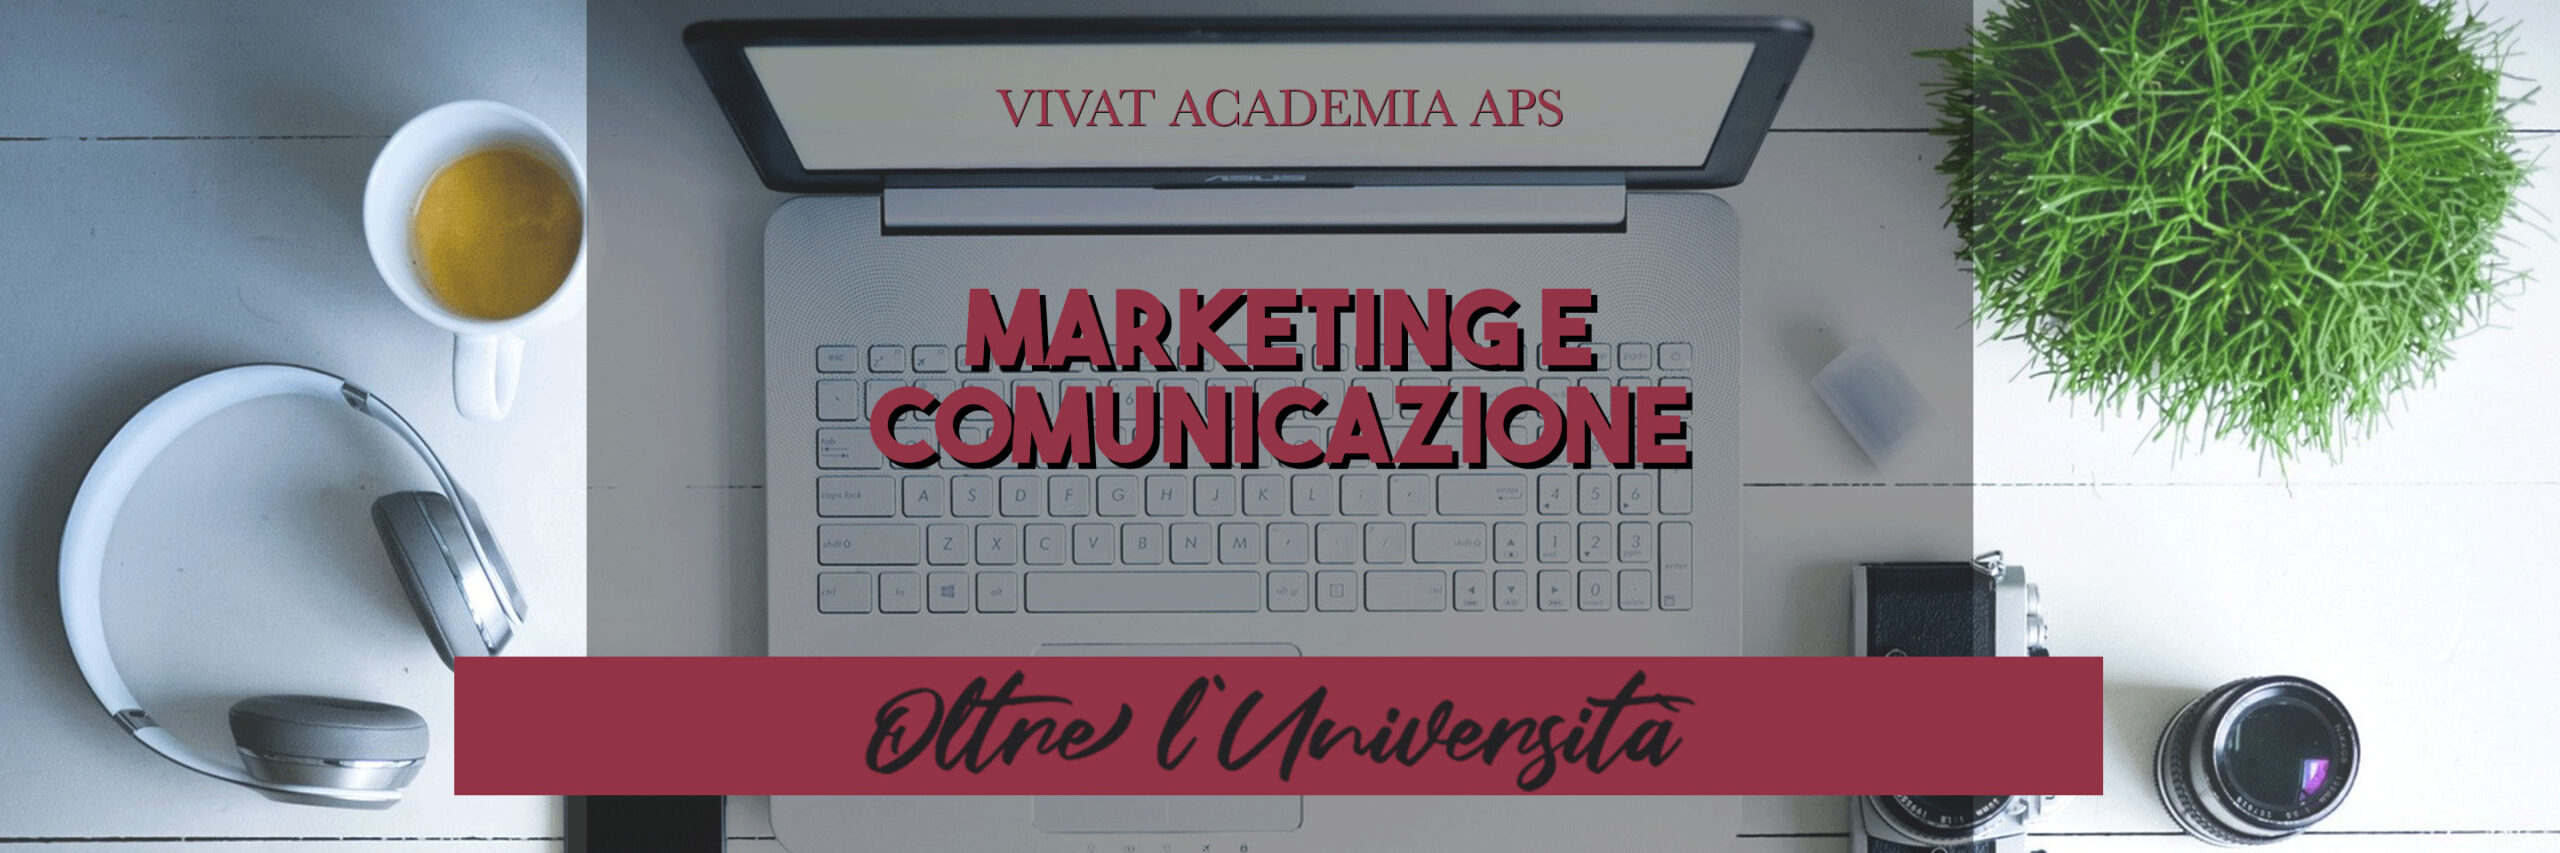 Marketing e comunicazione